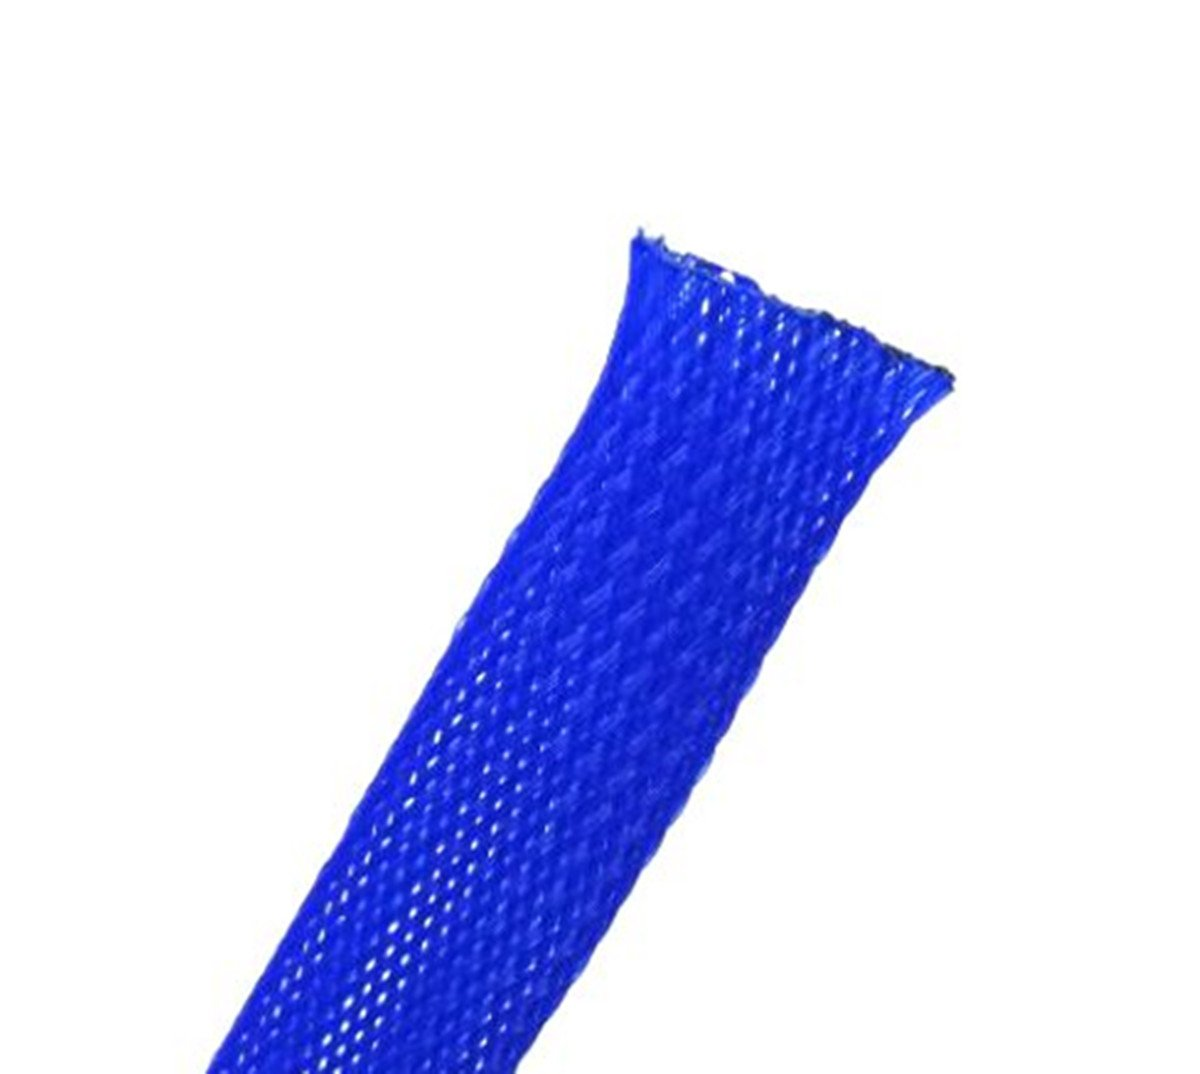 Wang-Data PET Blue Braided Cable Sleeve 1 inch X 100ft (1'' X 100')